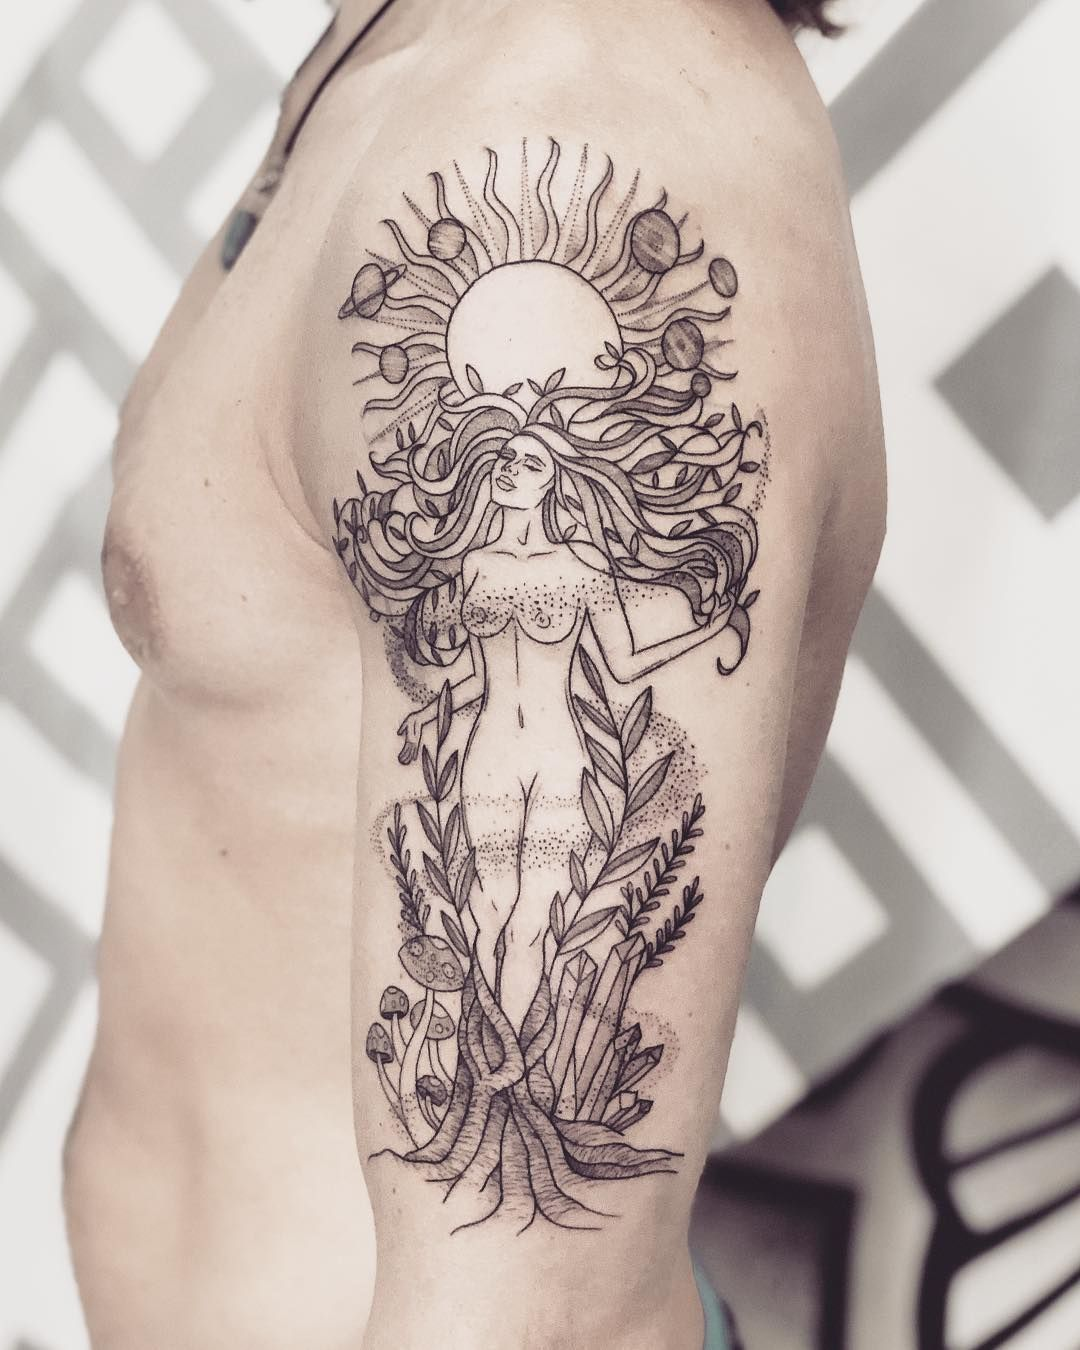 "ॐ 𝐓 . 𝐑 𝐀 𝐃 𝐙 on Instagram: ""Gaia goddess on Josh! Another magical session done at the @karmahousebali 😌✨And thank you for traveling, you legend!"""